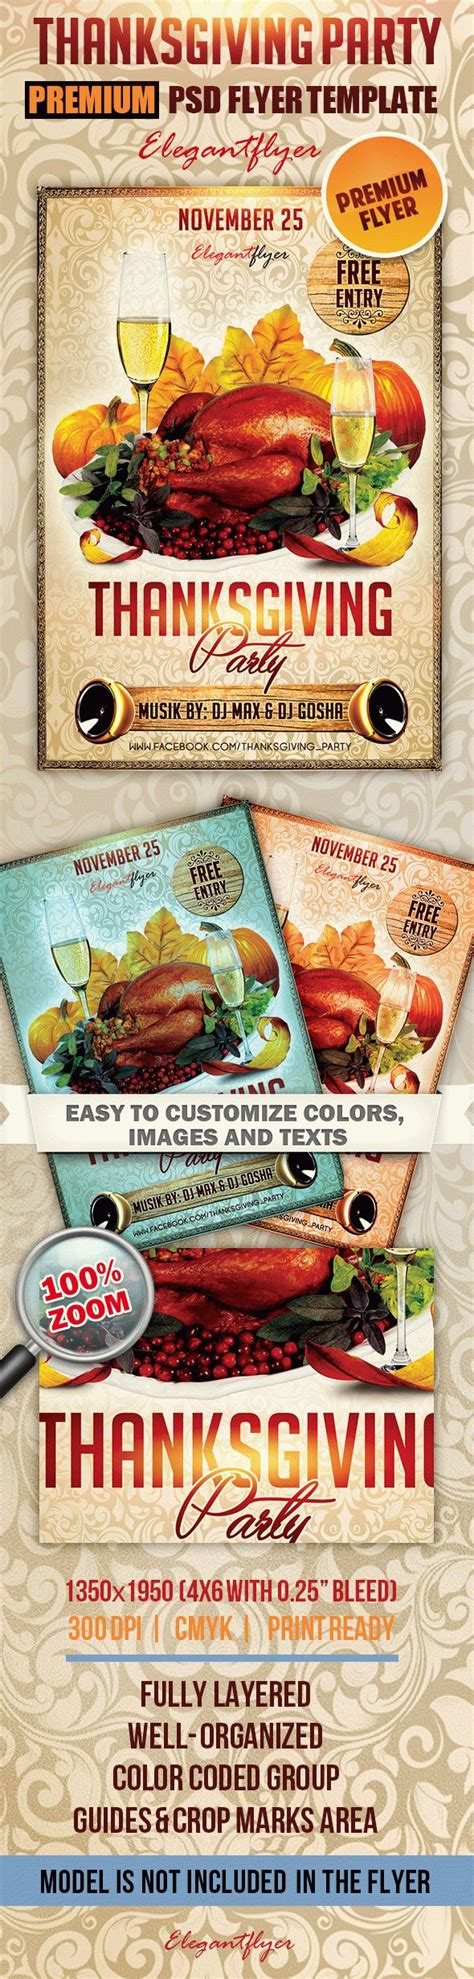 thanksgiving card template psd thanksgiving premium club flyer psd template by